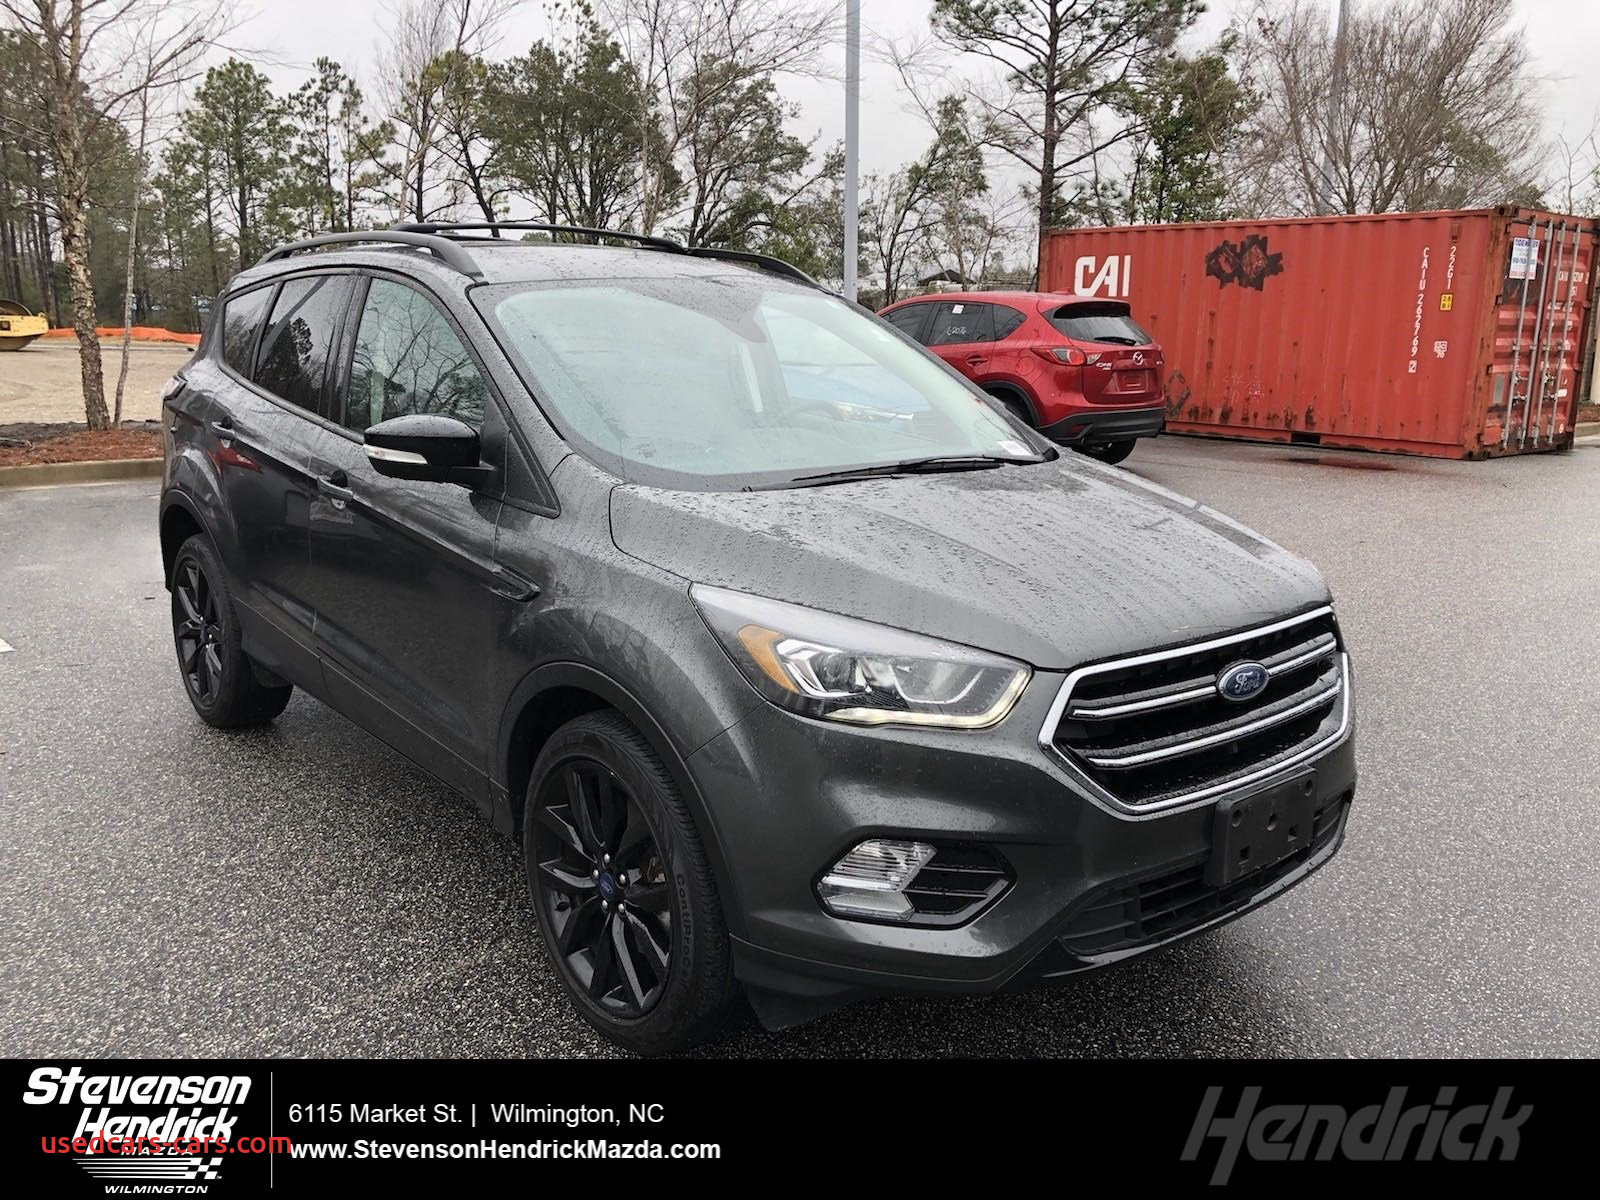 Capital ford Wilmington north Carolina Beautiful ford Escape for Sale In Wilmington Nc Autotrader